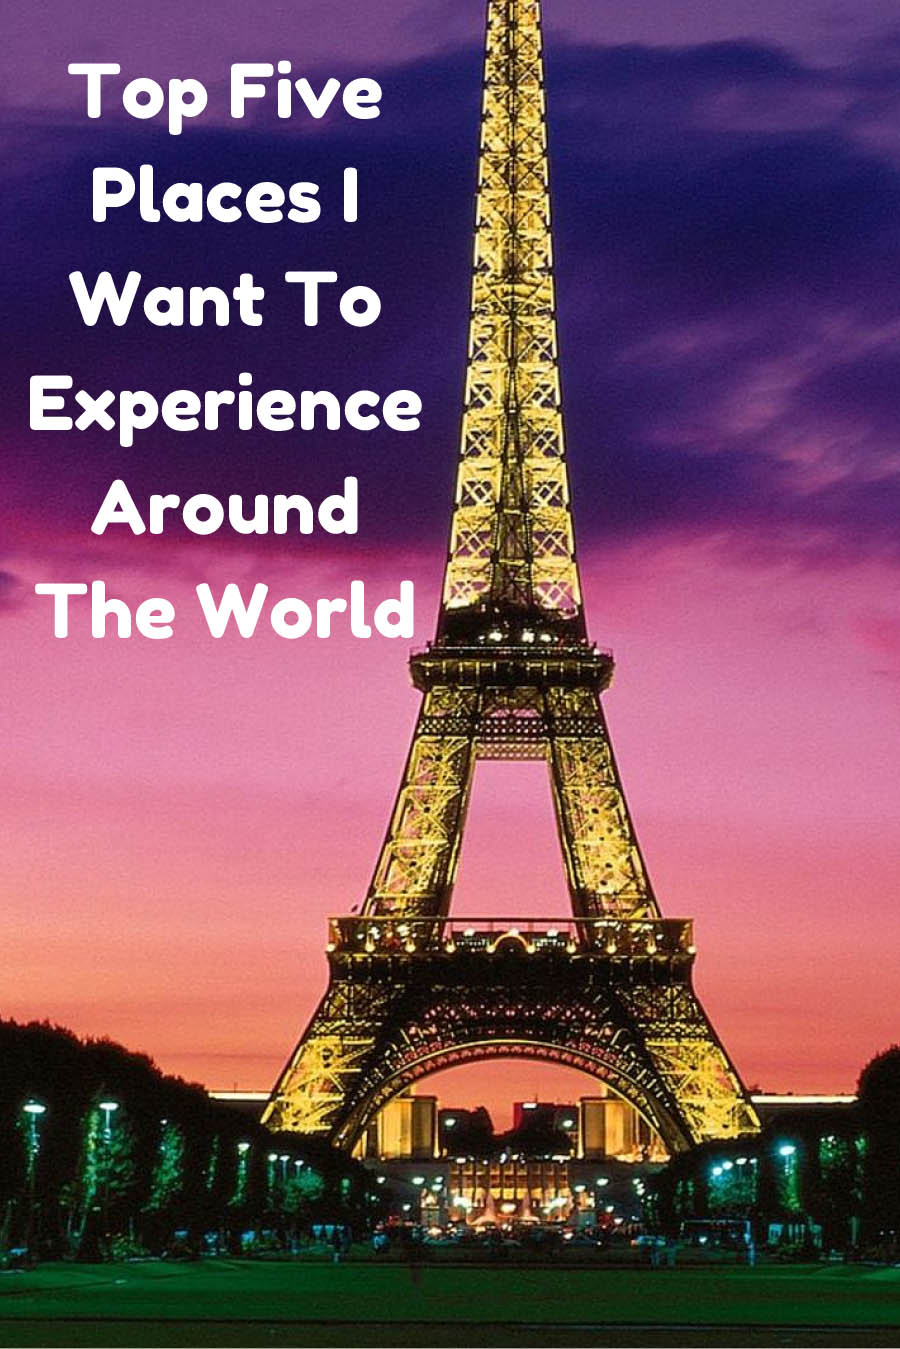 Top Five Places I Want to Experience Around The World